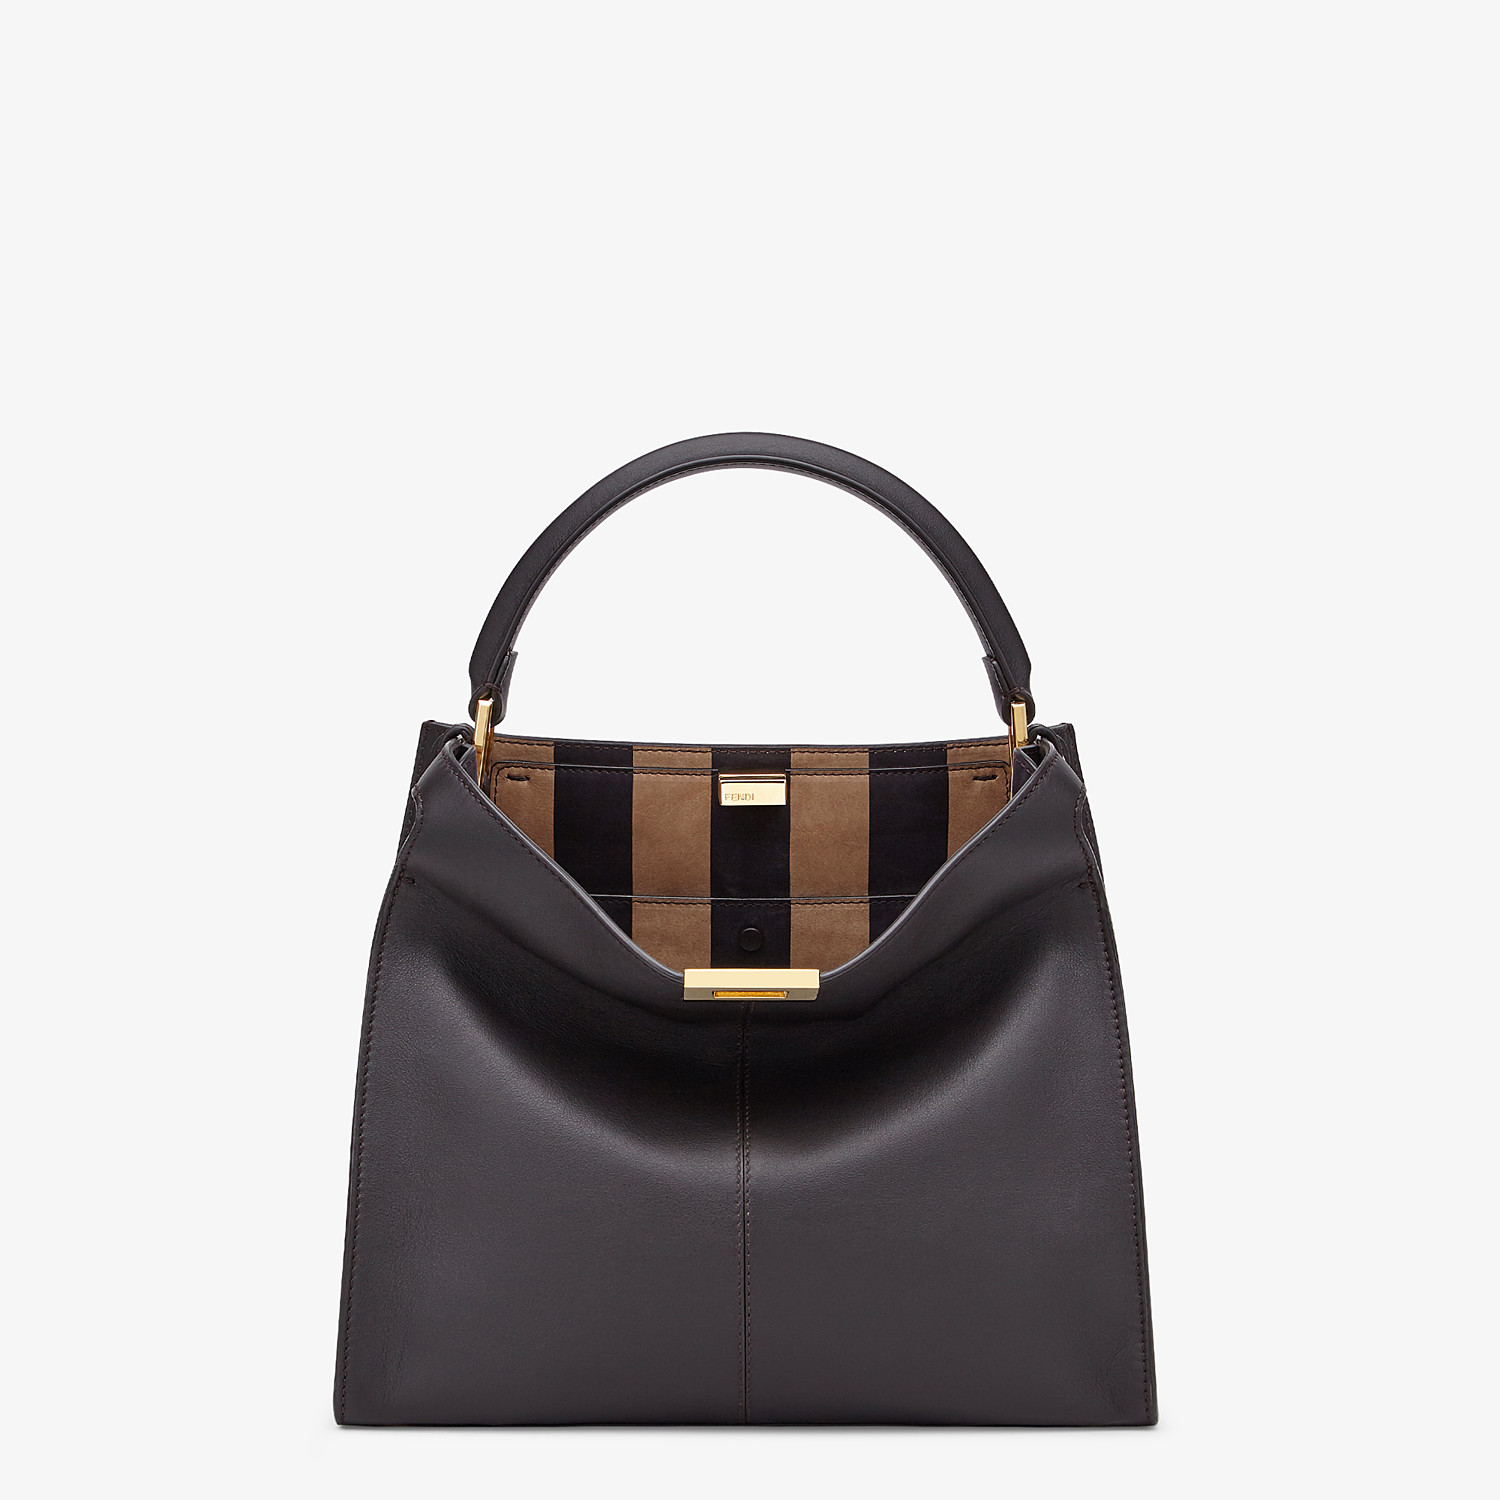 FENDI PEEKABOO X-LITE MEDIUM - Borsa in pelle marrone - vista 3 dettaglio